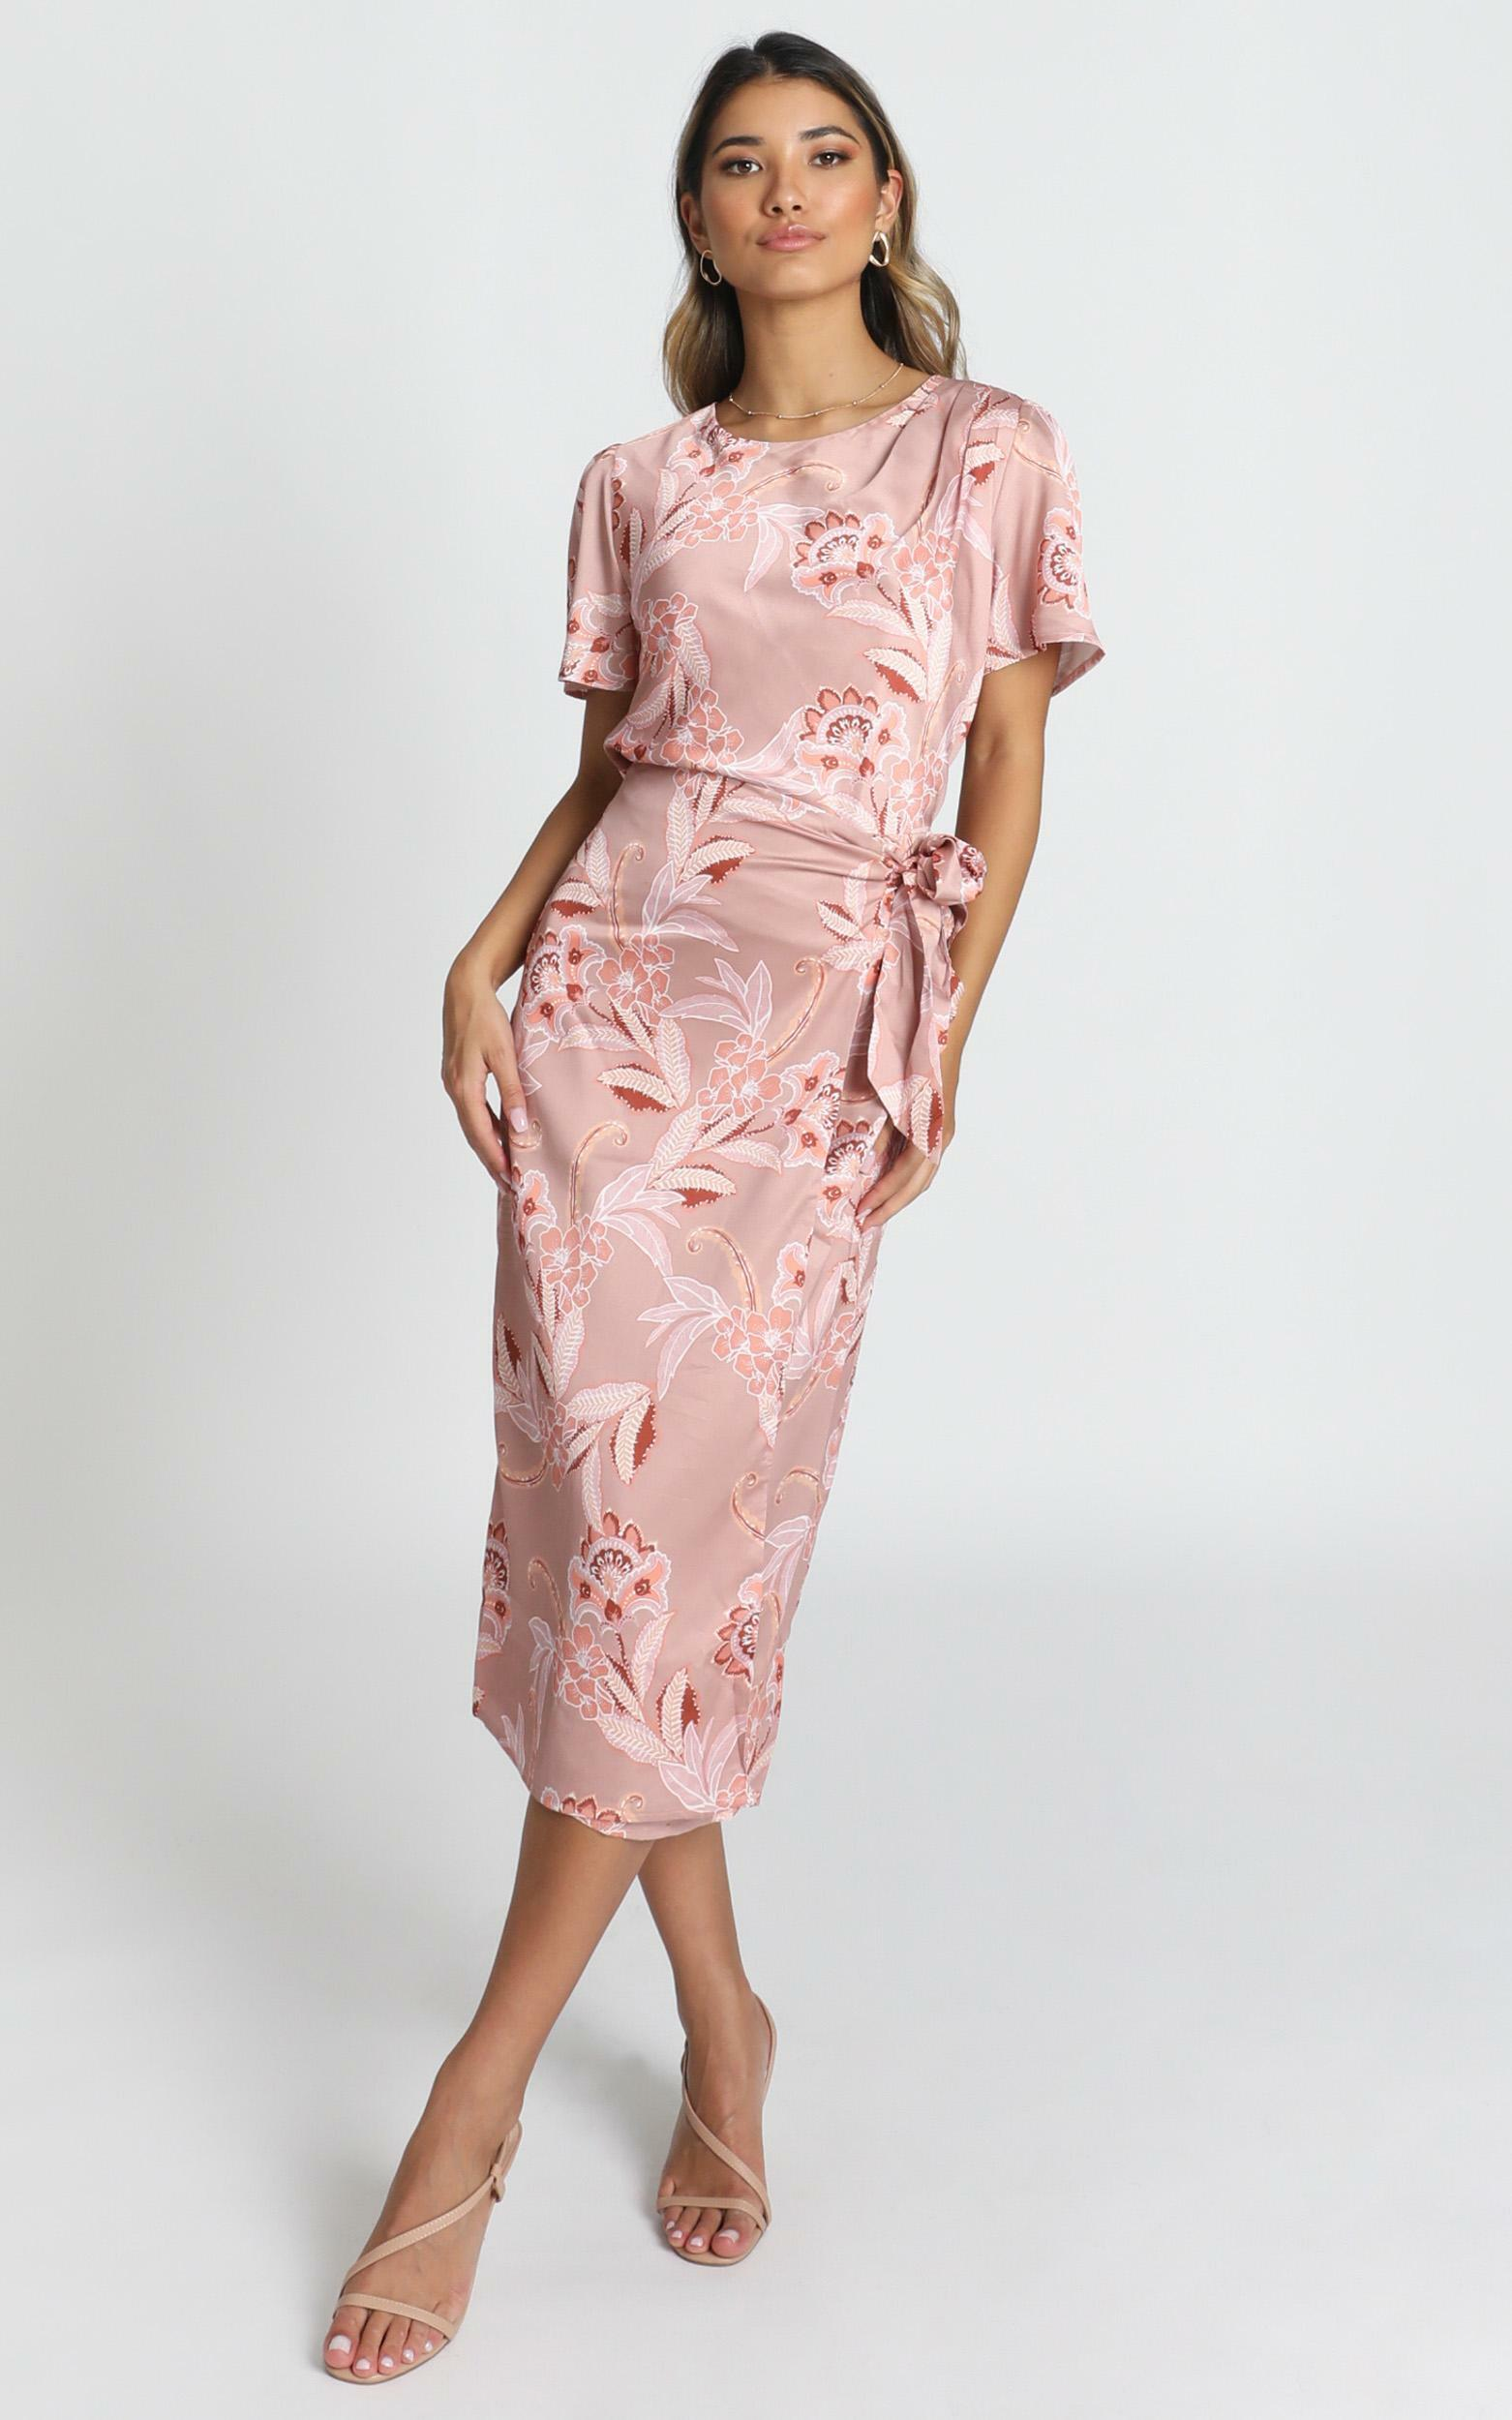 Board Meeting Skirt in rose paisley - 14 (XL), Pink, hi-res image number null